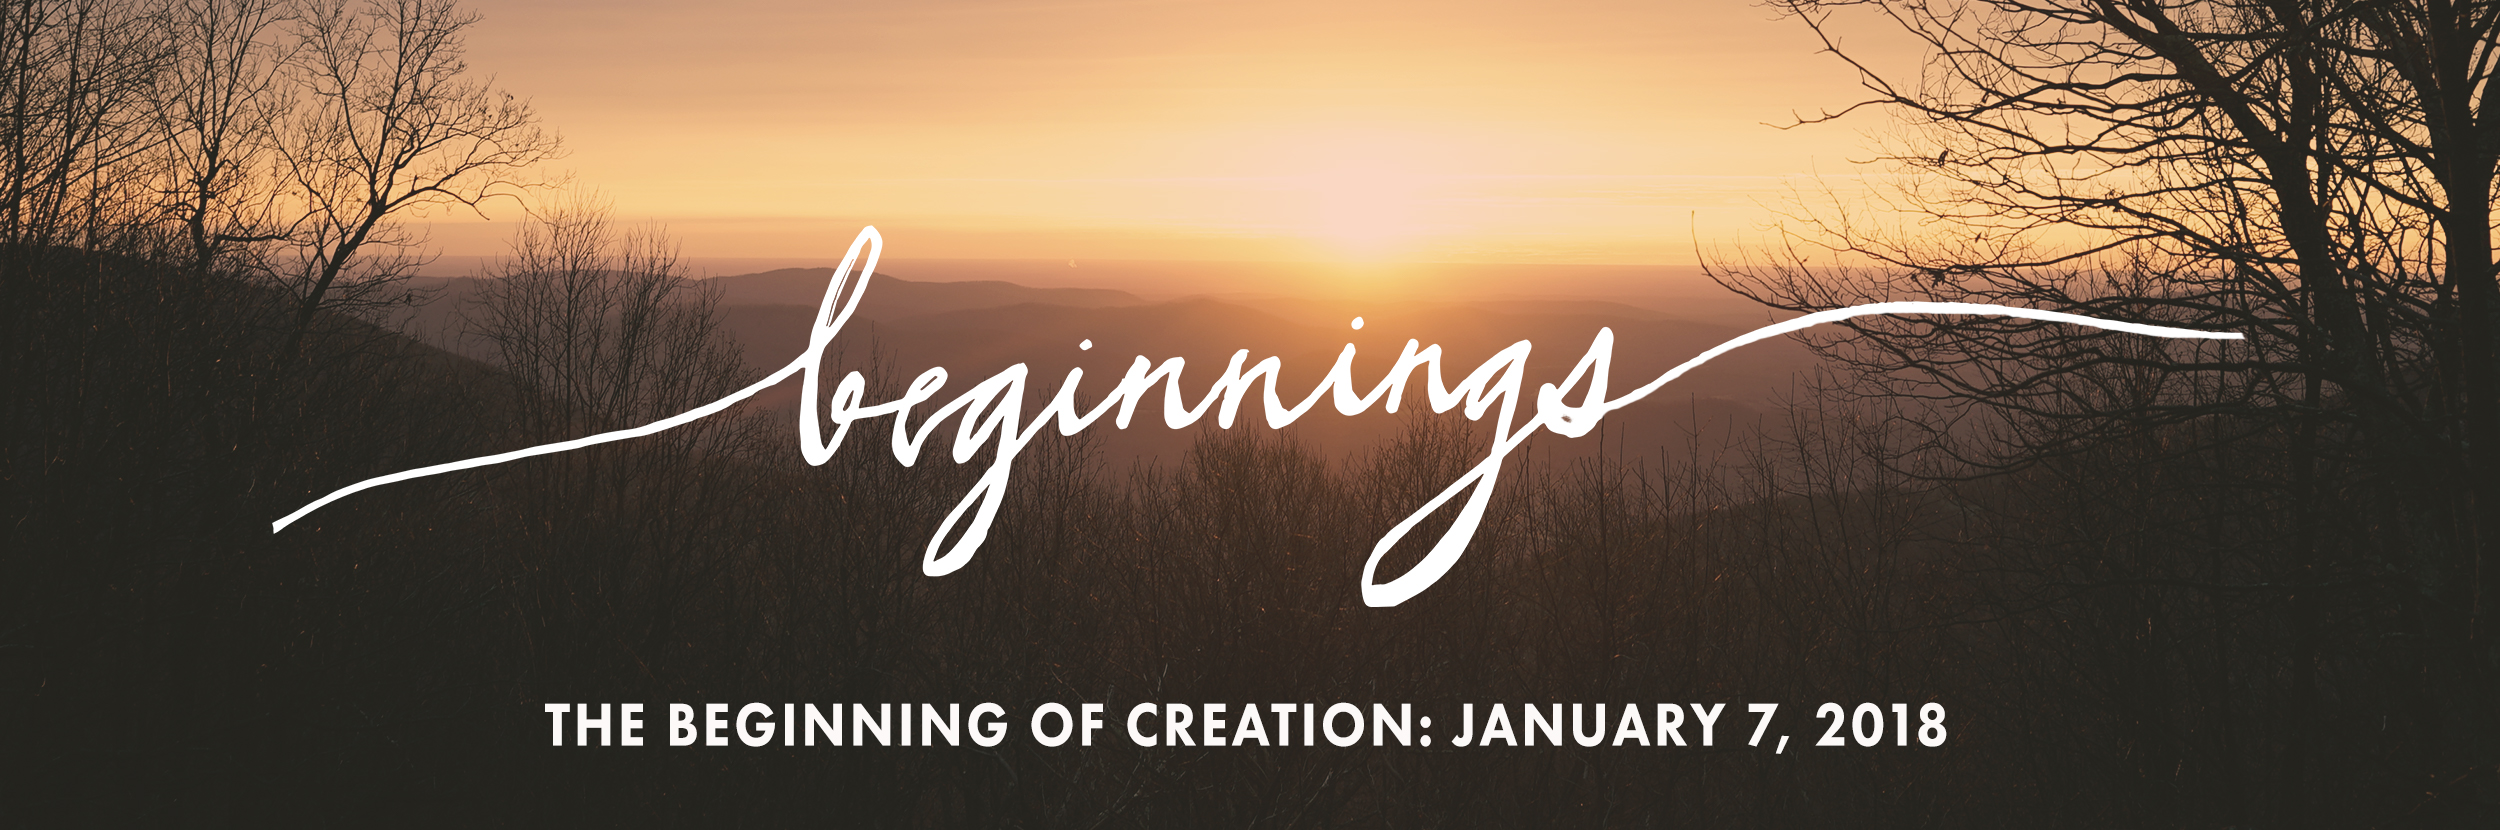 1. Beginnings_Creation Banner.jpg